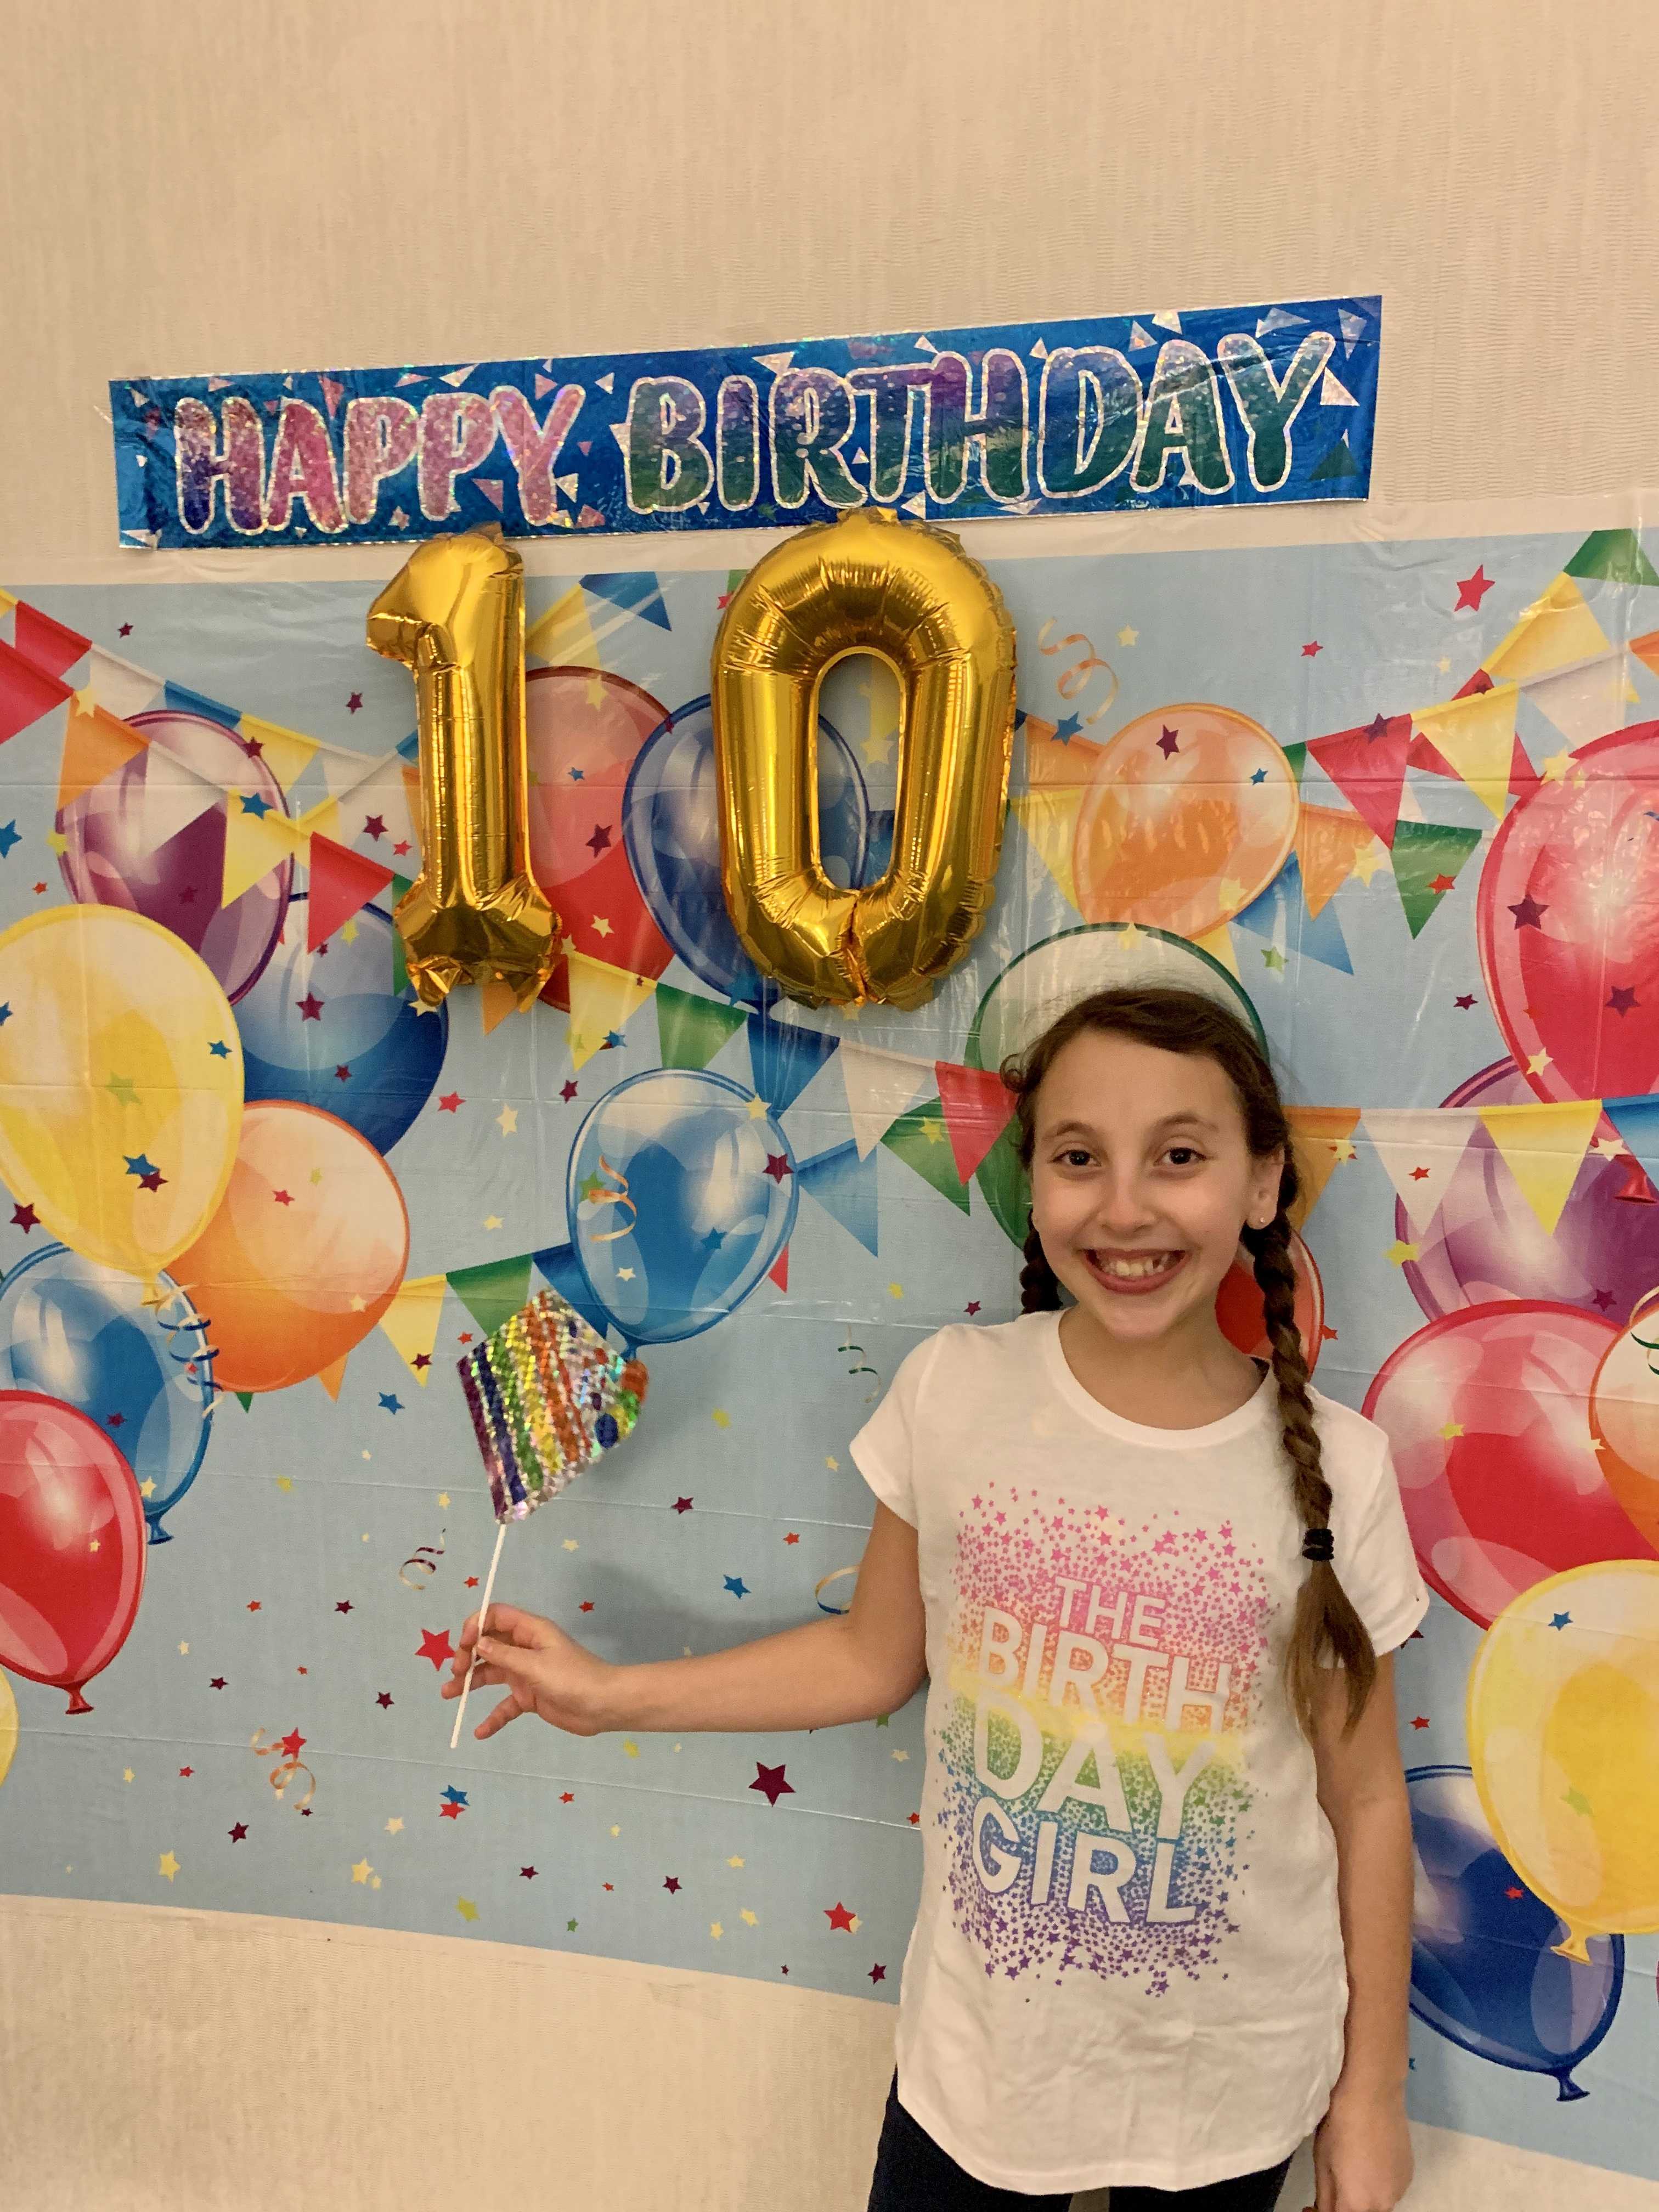 X My Daughter is 10! X